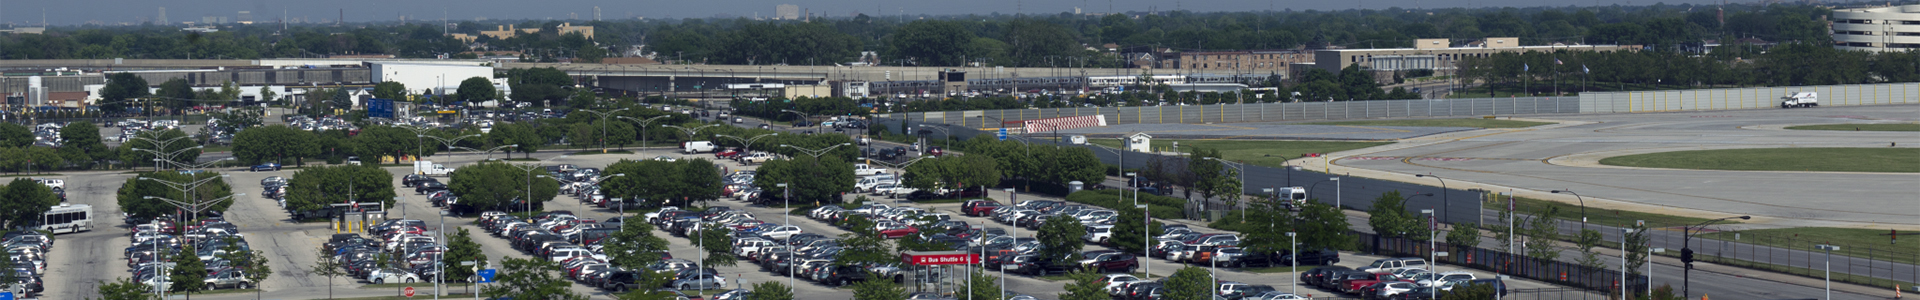 Midway Airport Parking >> General Parking Information Chicago Midway International Airport Mdw